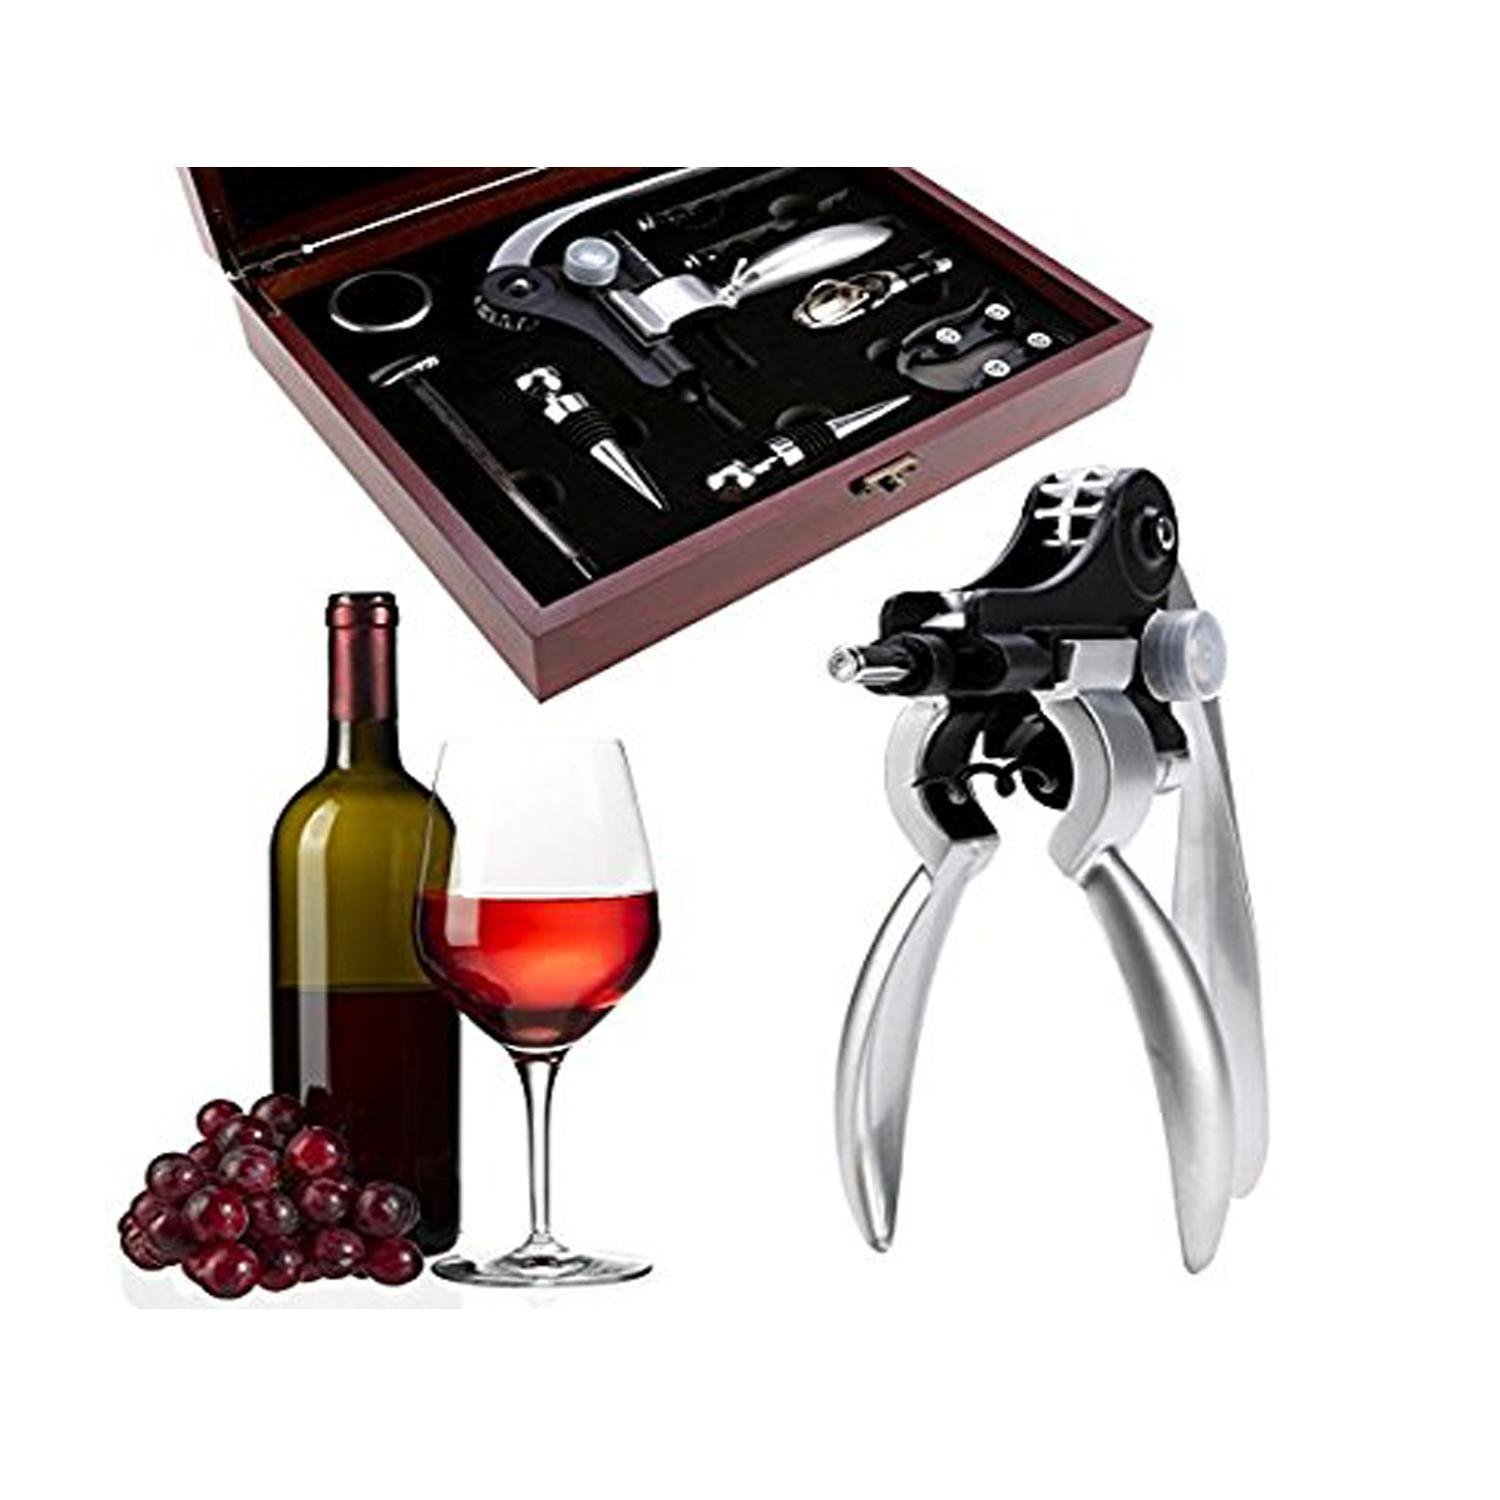 Hindom 9 Pieces Manual Wine Opener Box Set for Hotel, Restaurant, Party and Home Kitchen Use